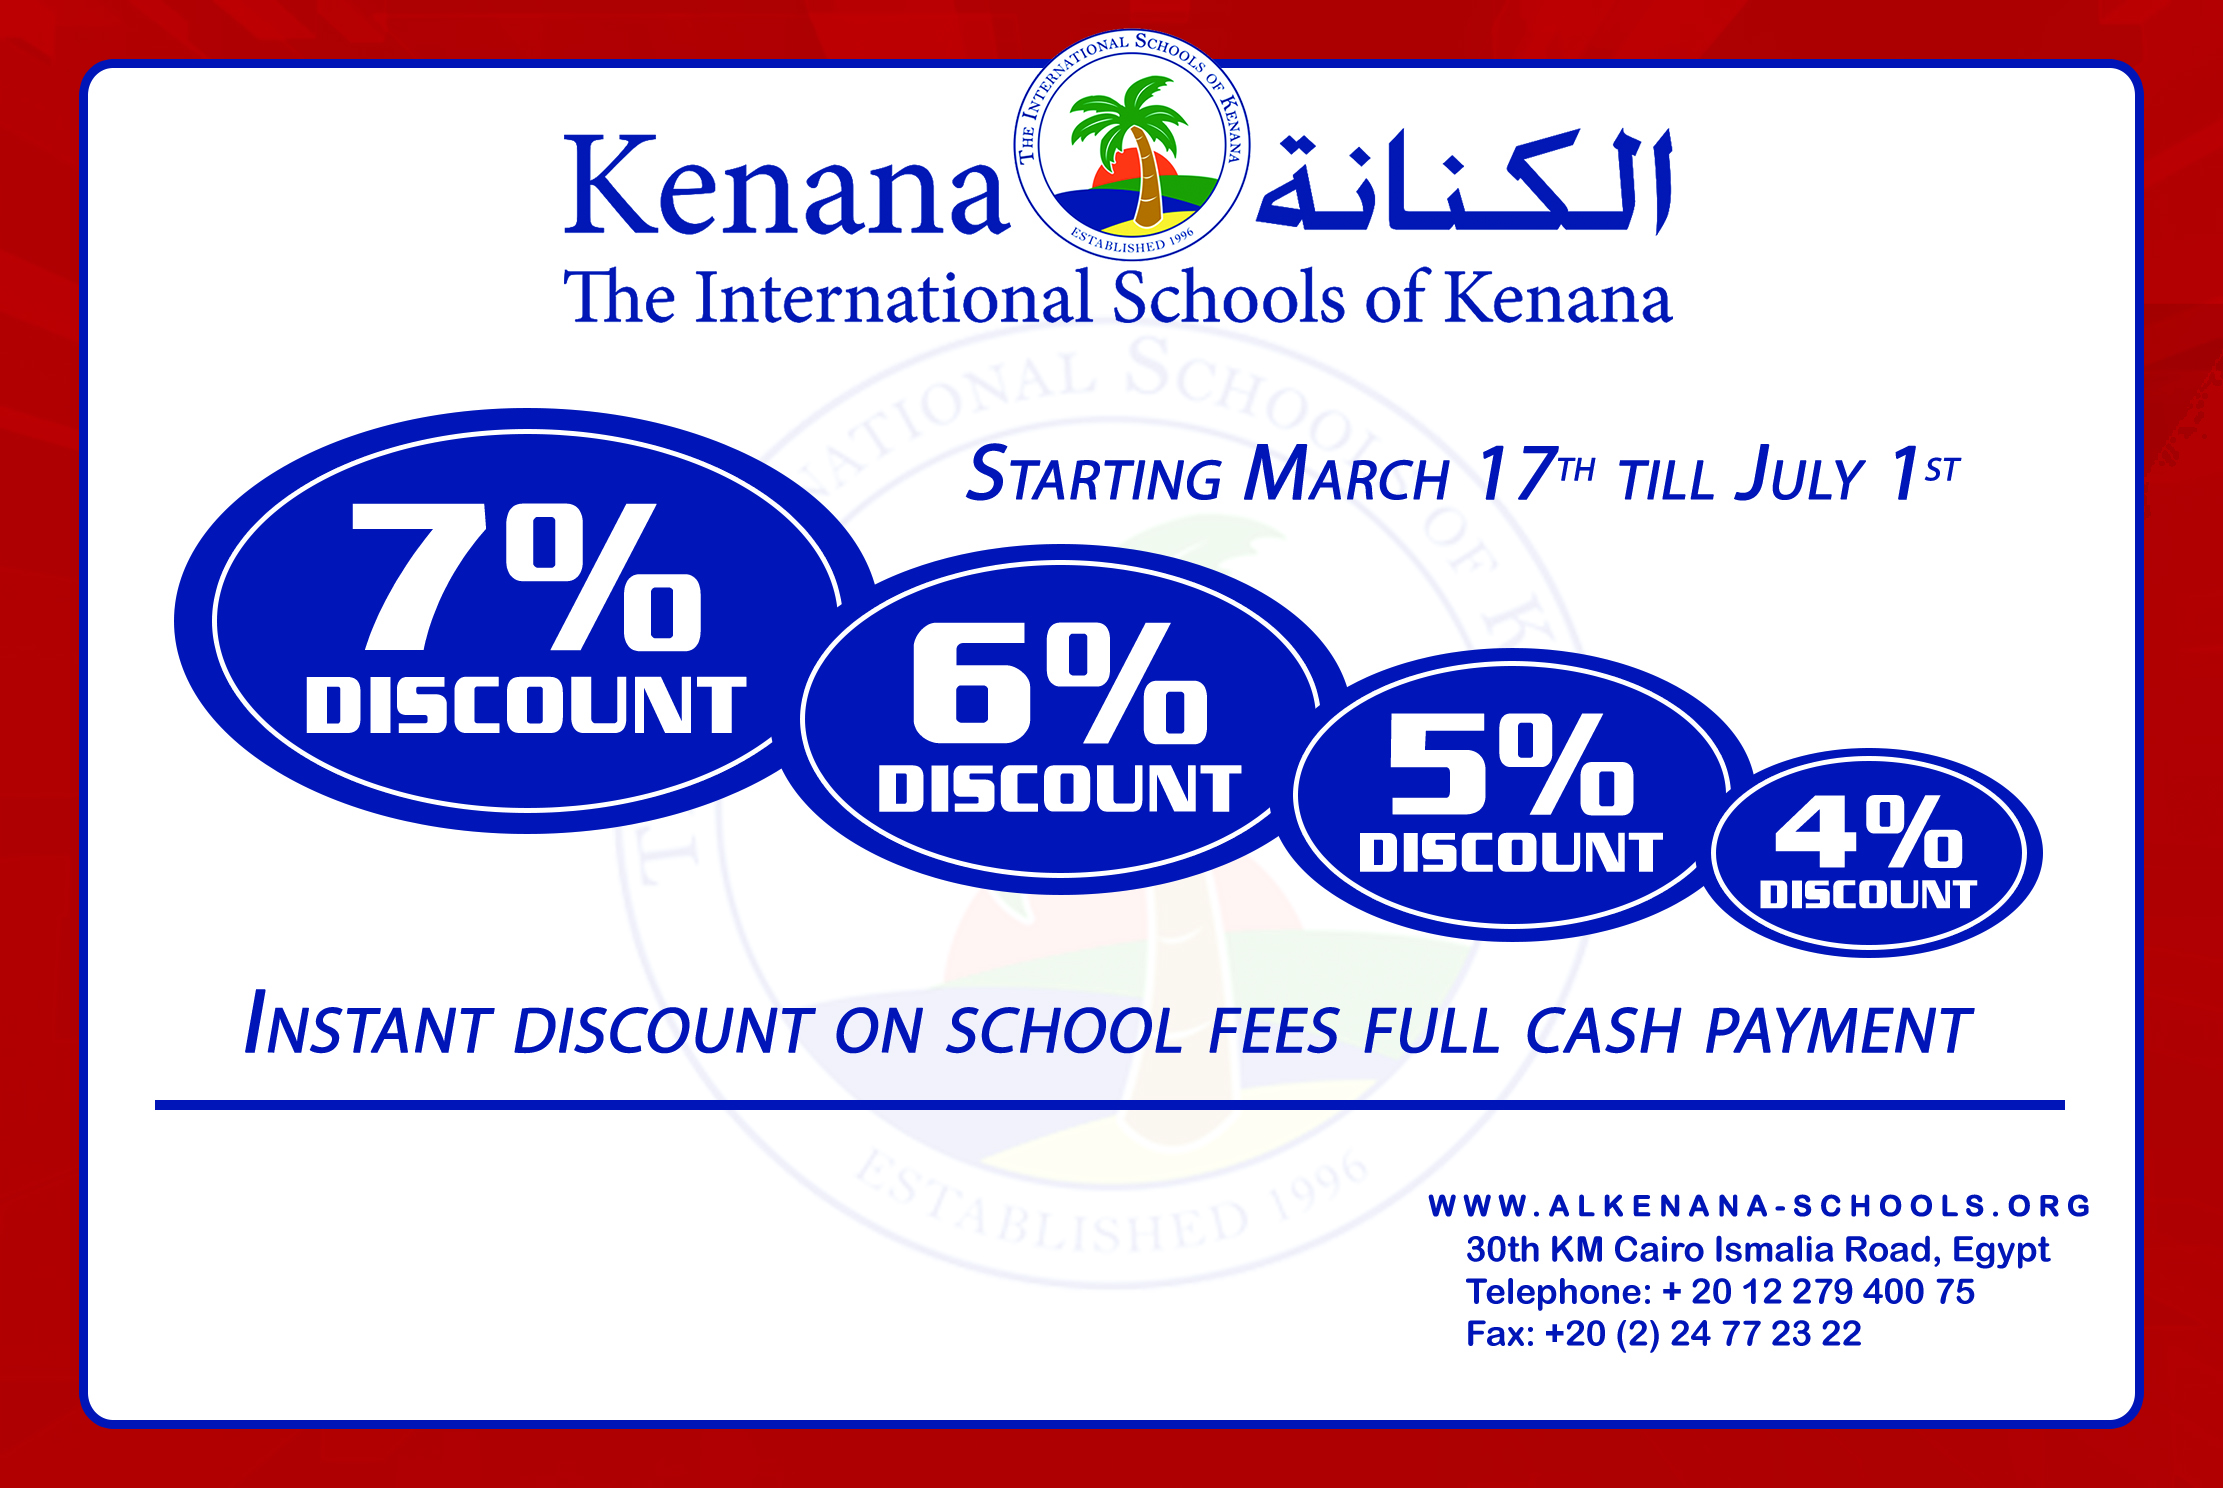 I.S.K. Instant discount on school fees full cash payment